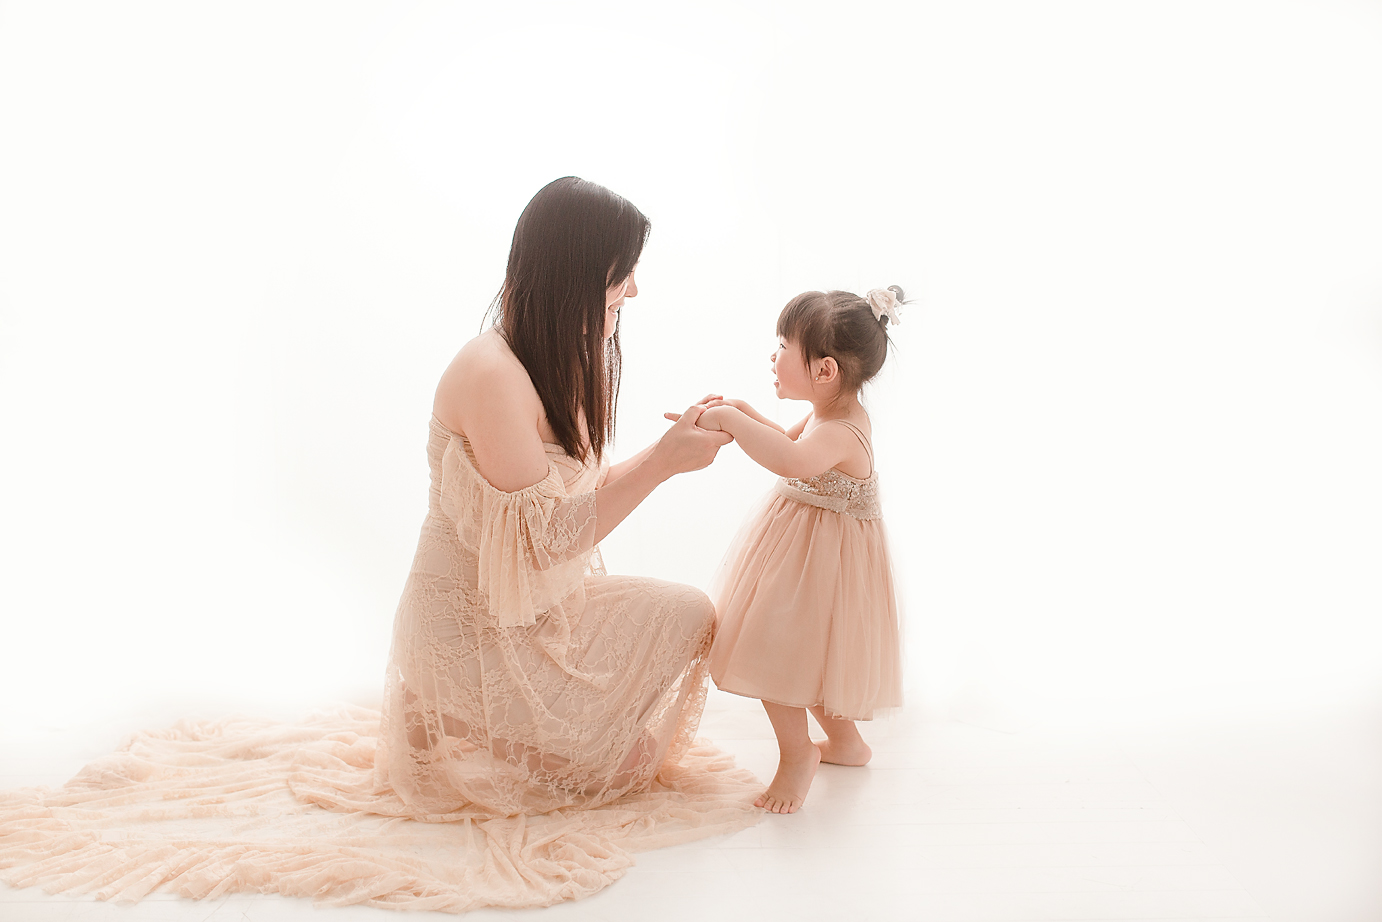 orange-county-mommy-and-me-baby-girl-white-backdrop.jpg